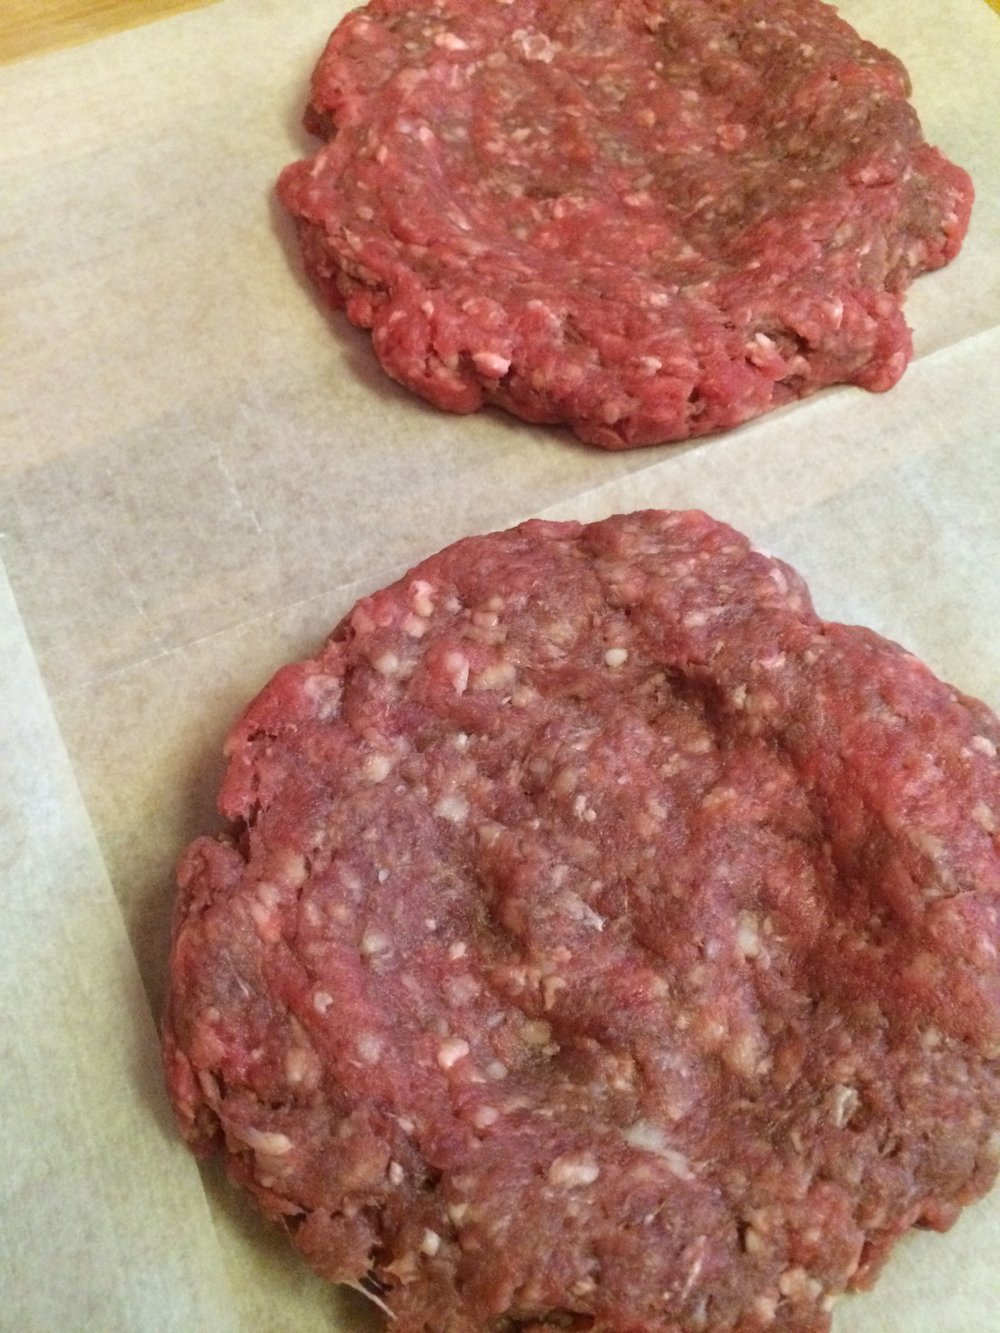 Make an indentation by flattening the center of the burger a bit thinner than the rest to house the filling